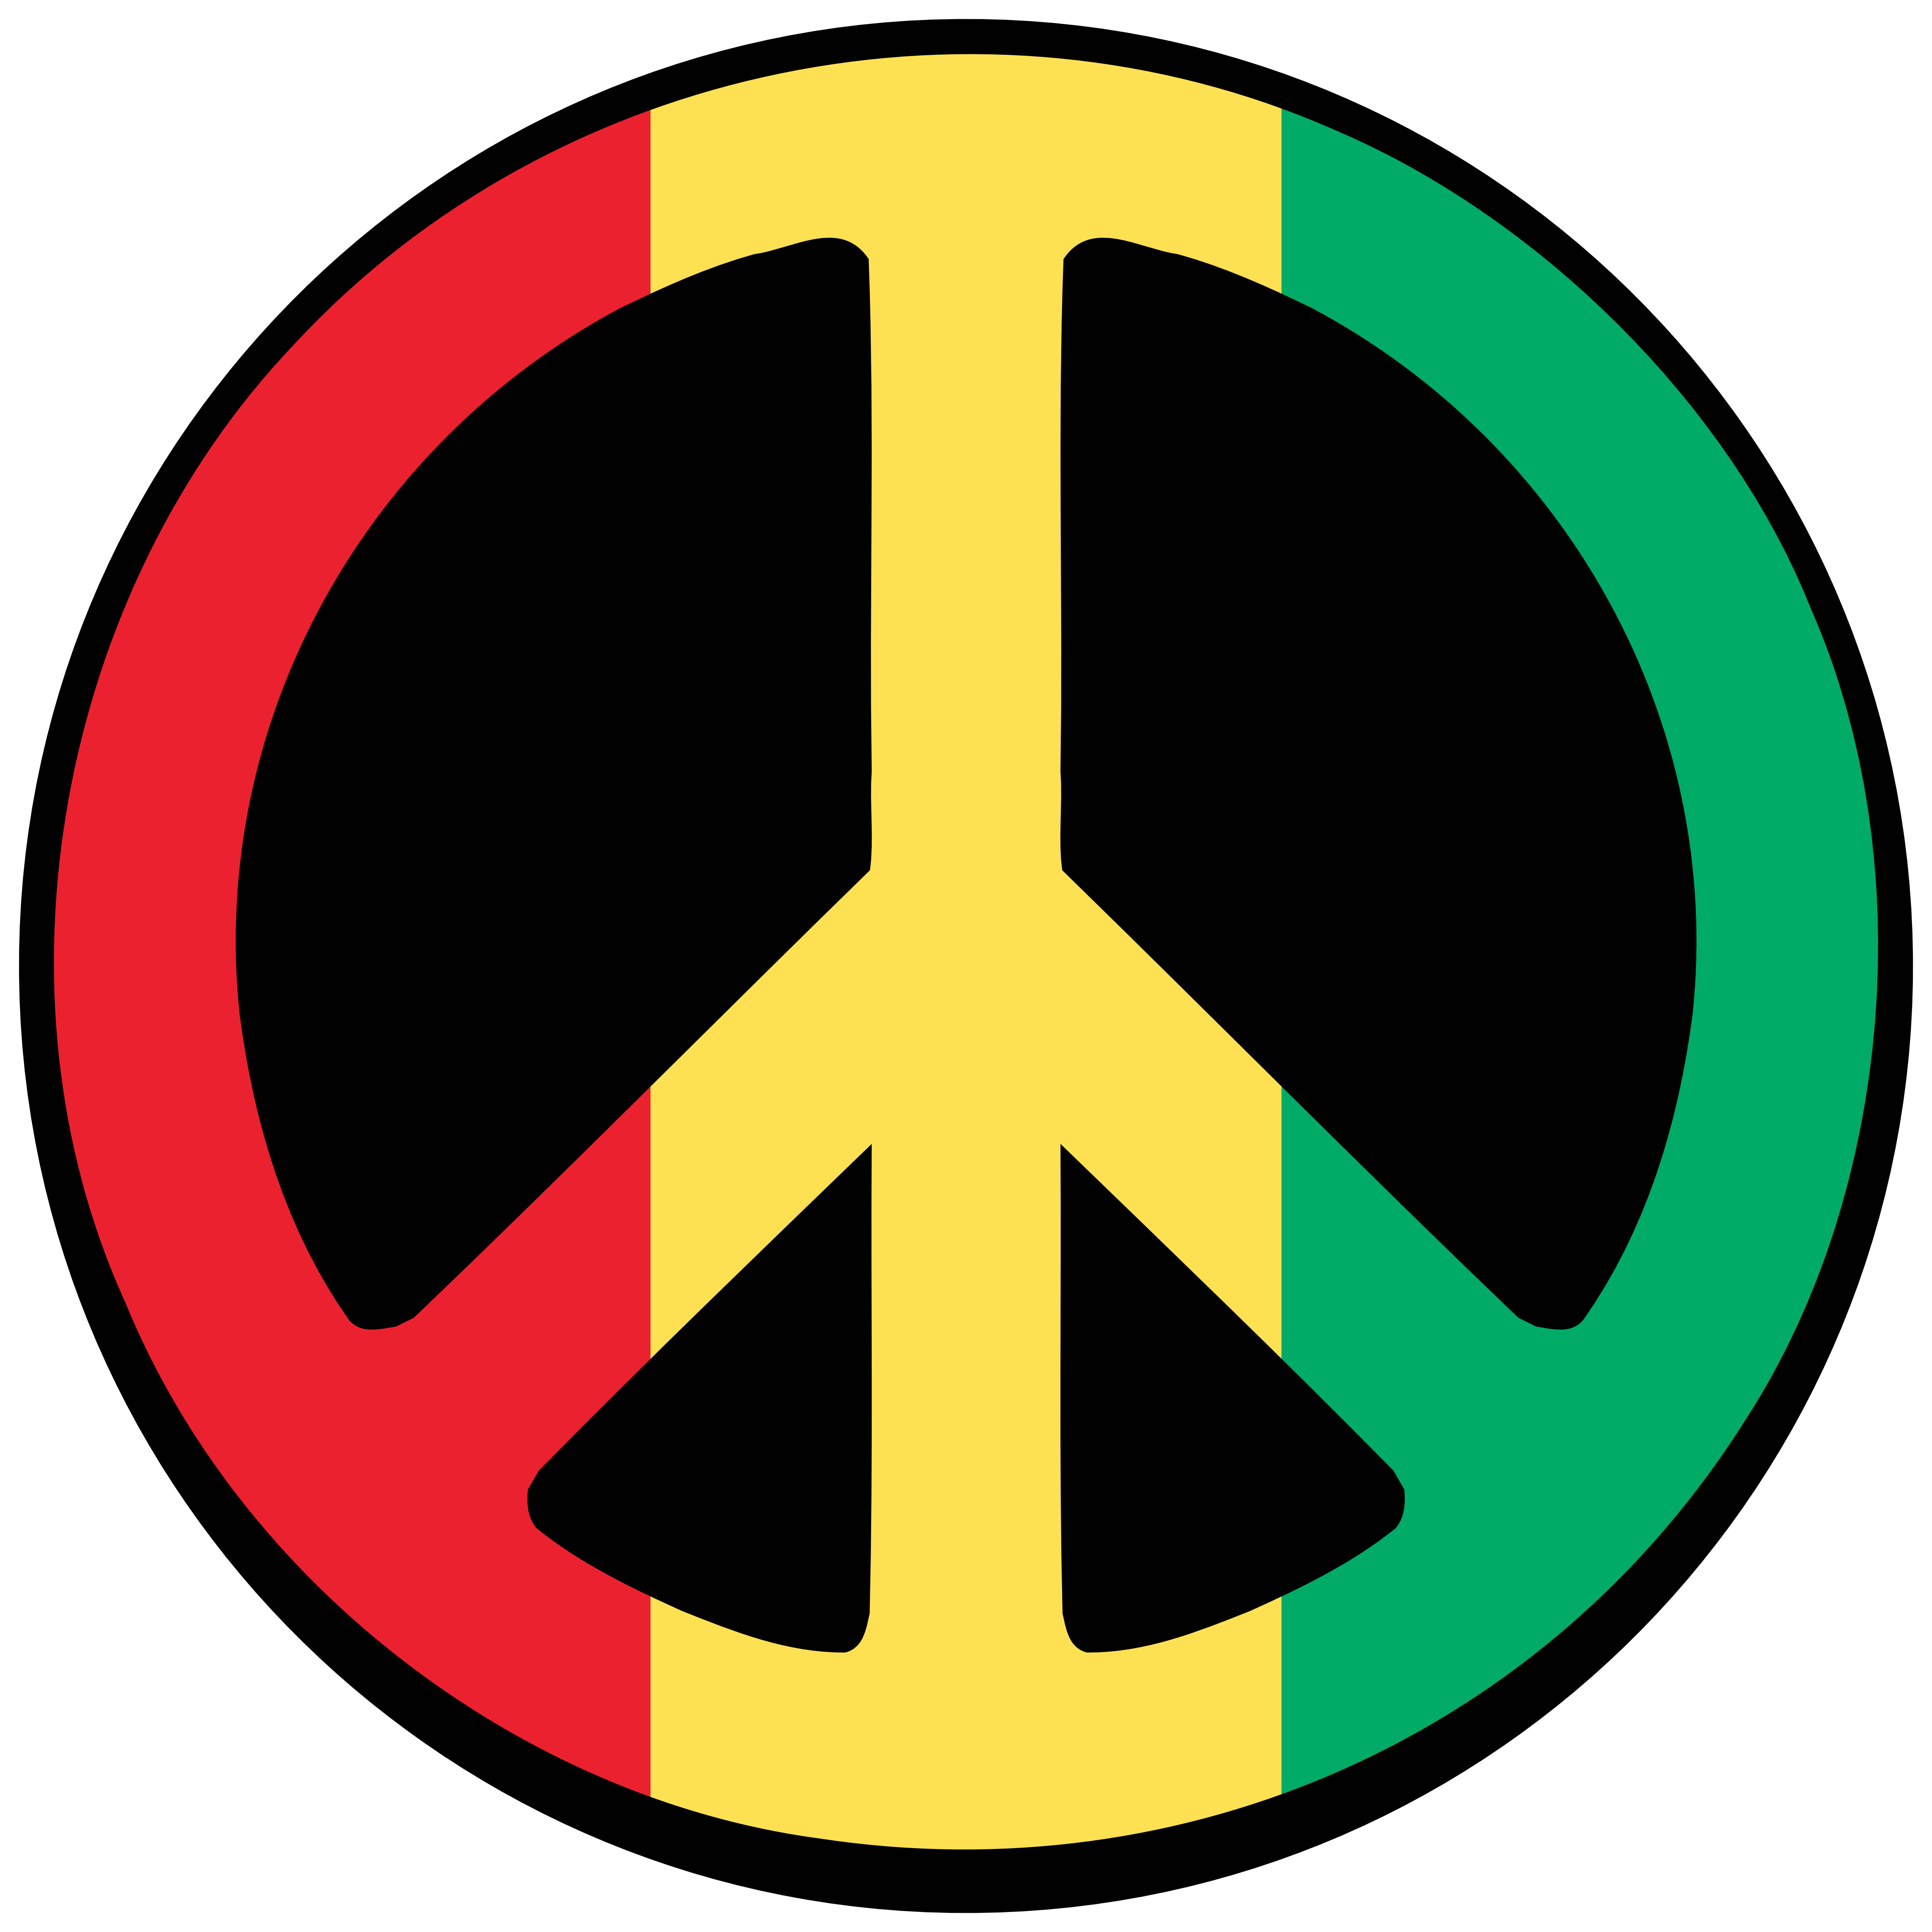 Tricolor Peace Sign